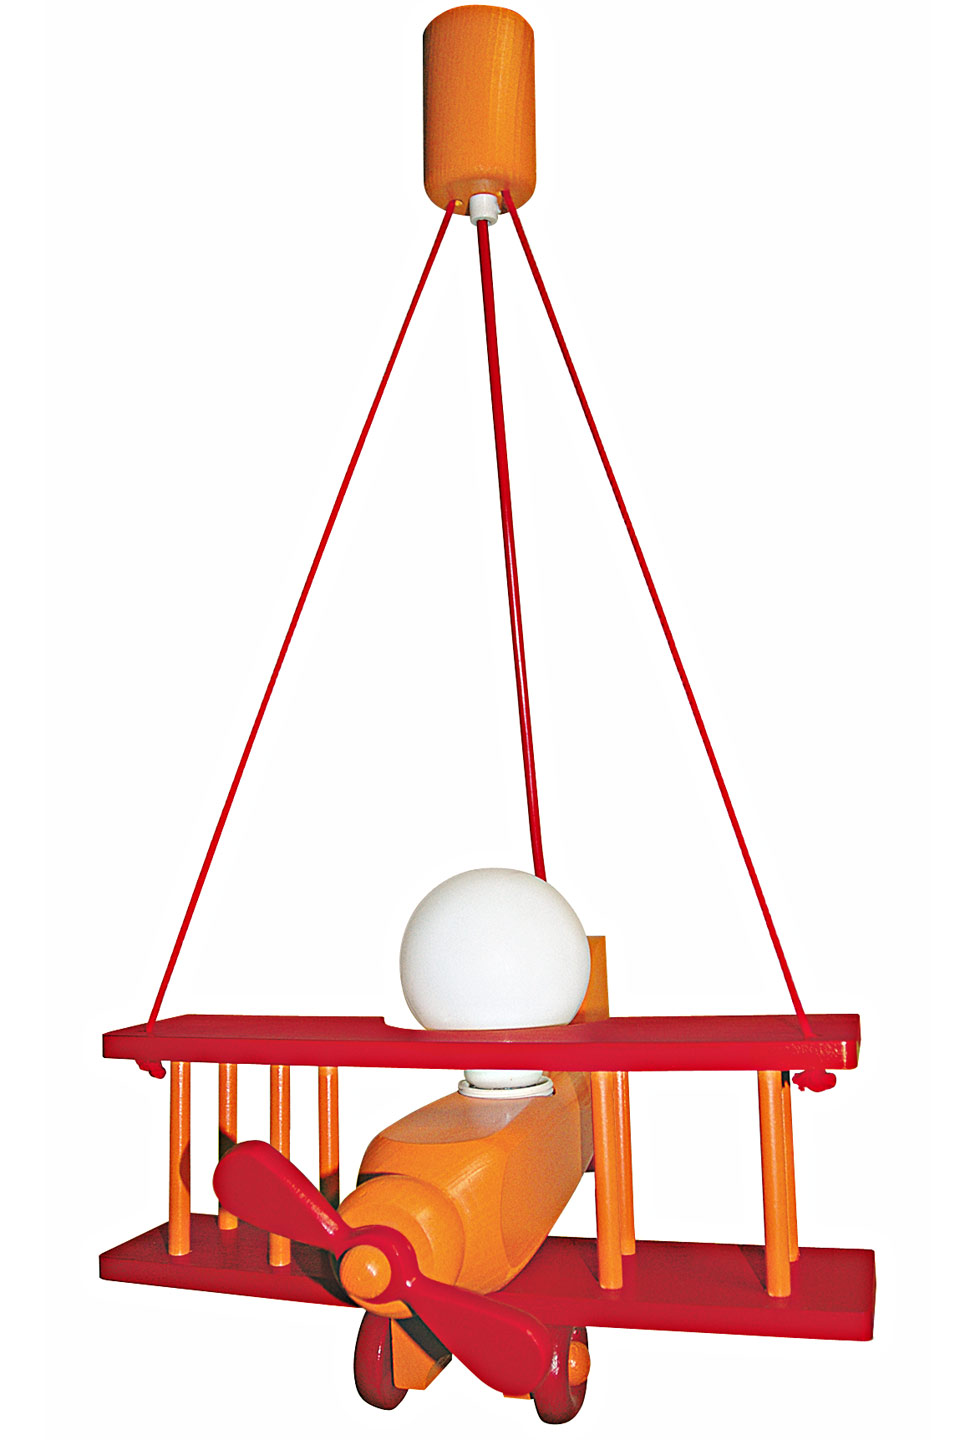 Avion orange et rouge xxl suspension par waldi leuchten for Luminaire suspension rouge